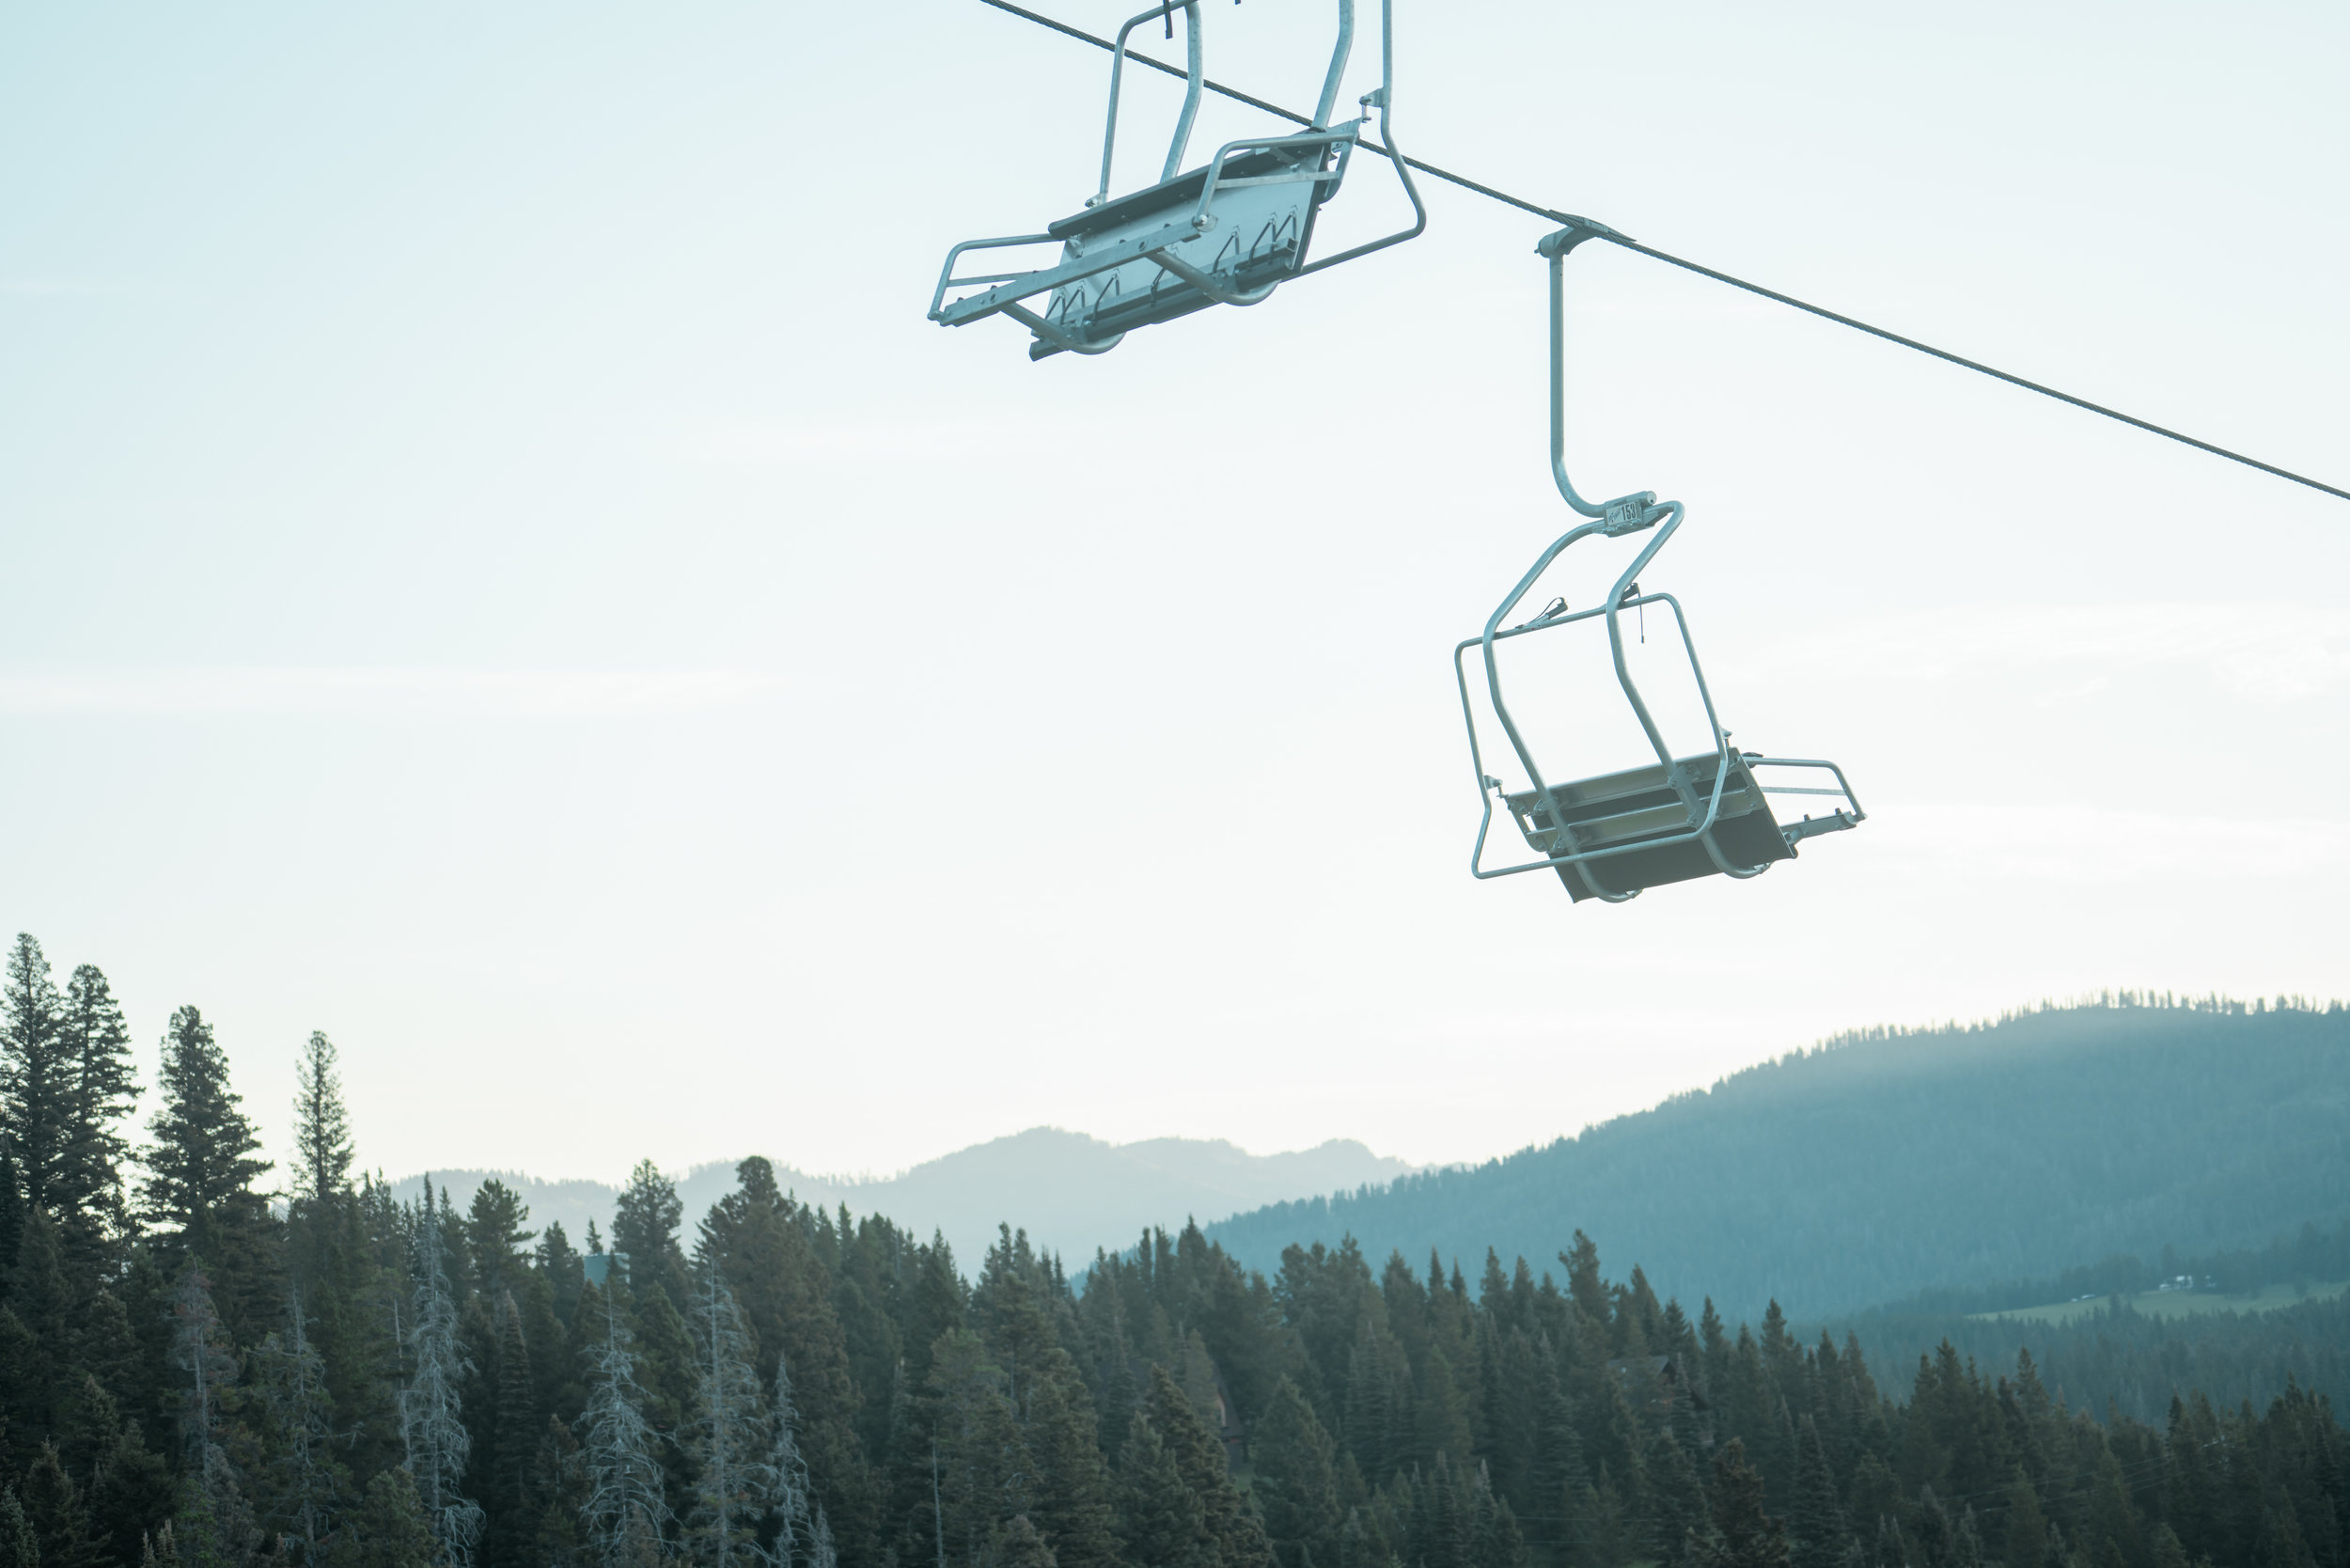 Chairlifts at Bridger Bowl just north of Bozeman, Montana.